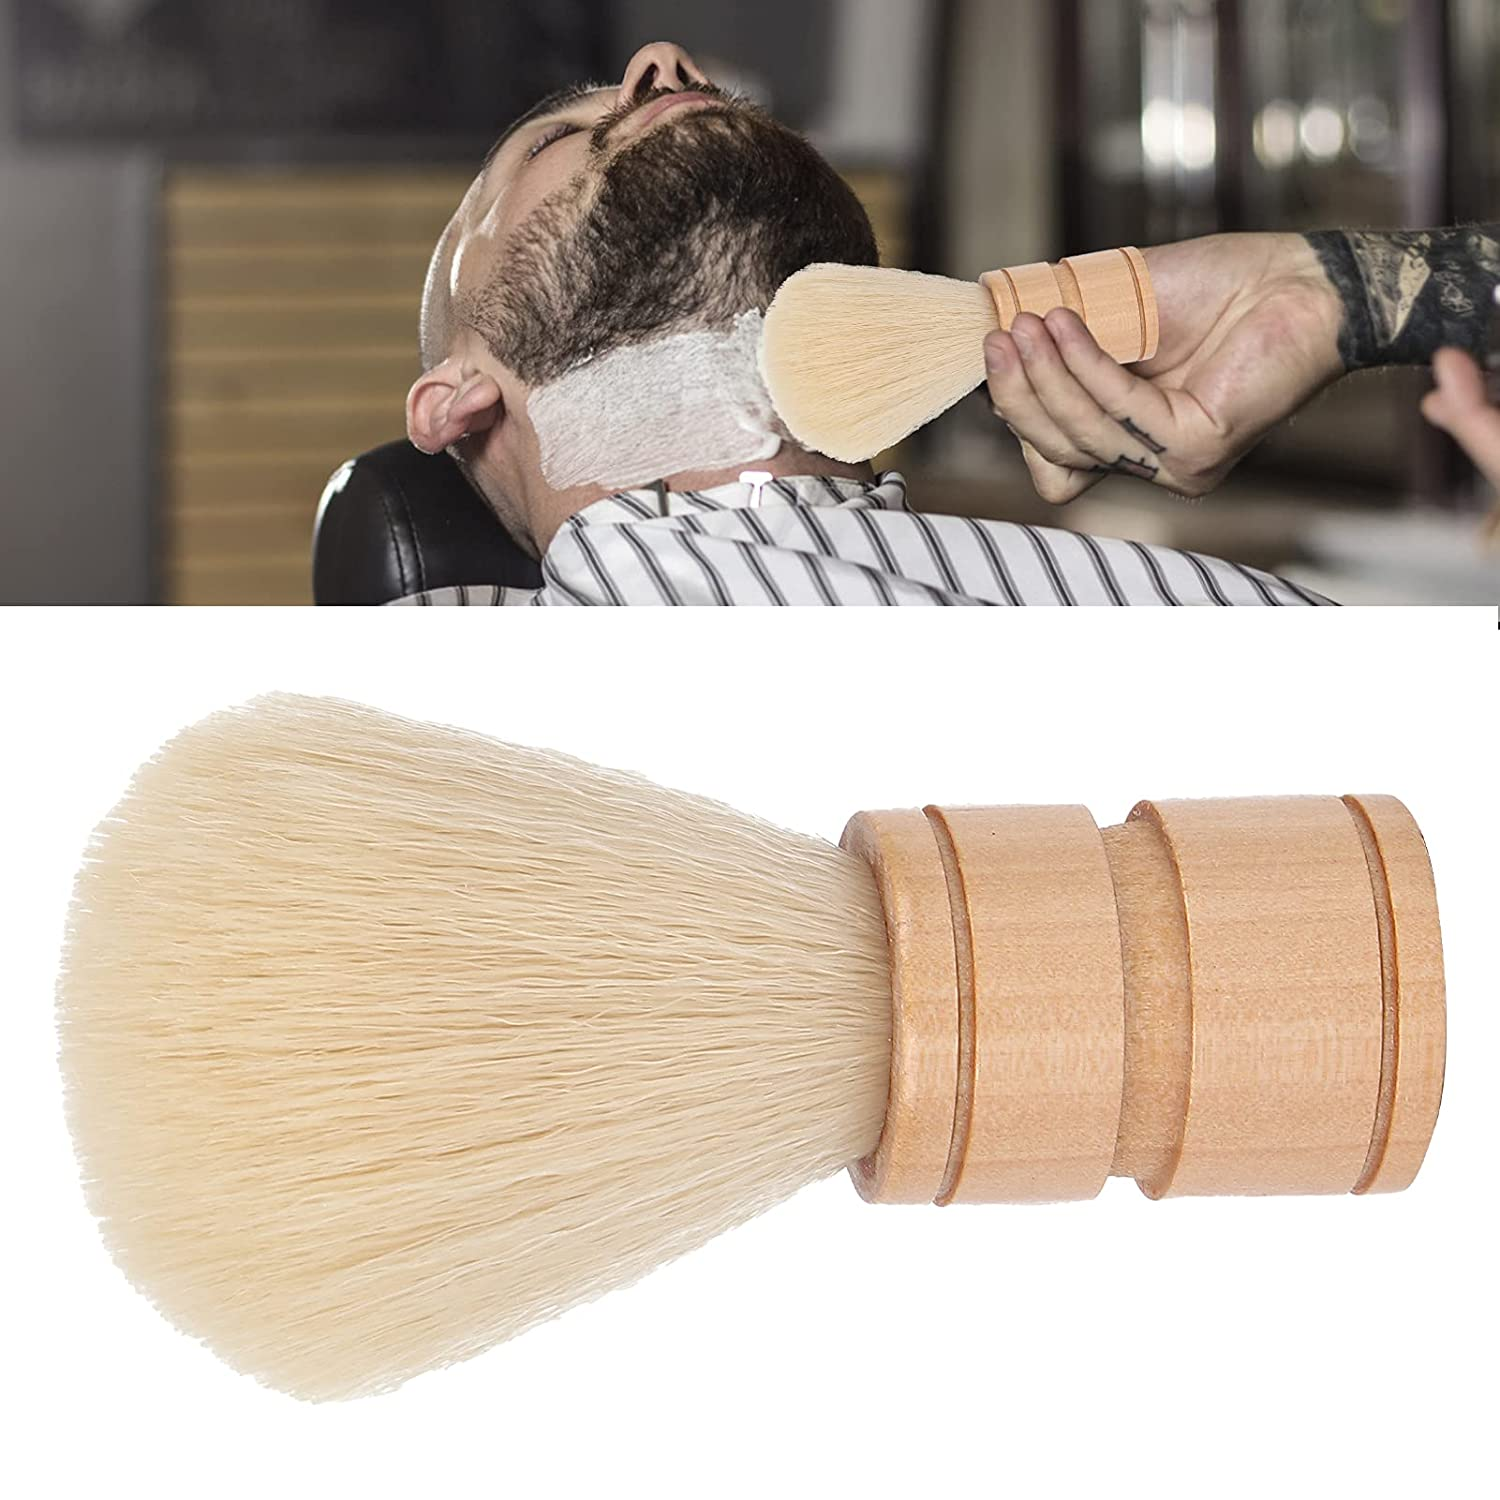 Shave Brush Wooden Handle Design Weight Max 66% OFF Light Ranking TOP14 for Shaving